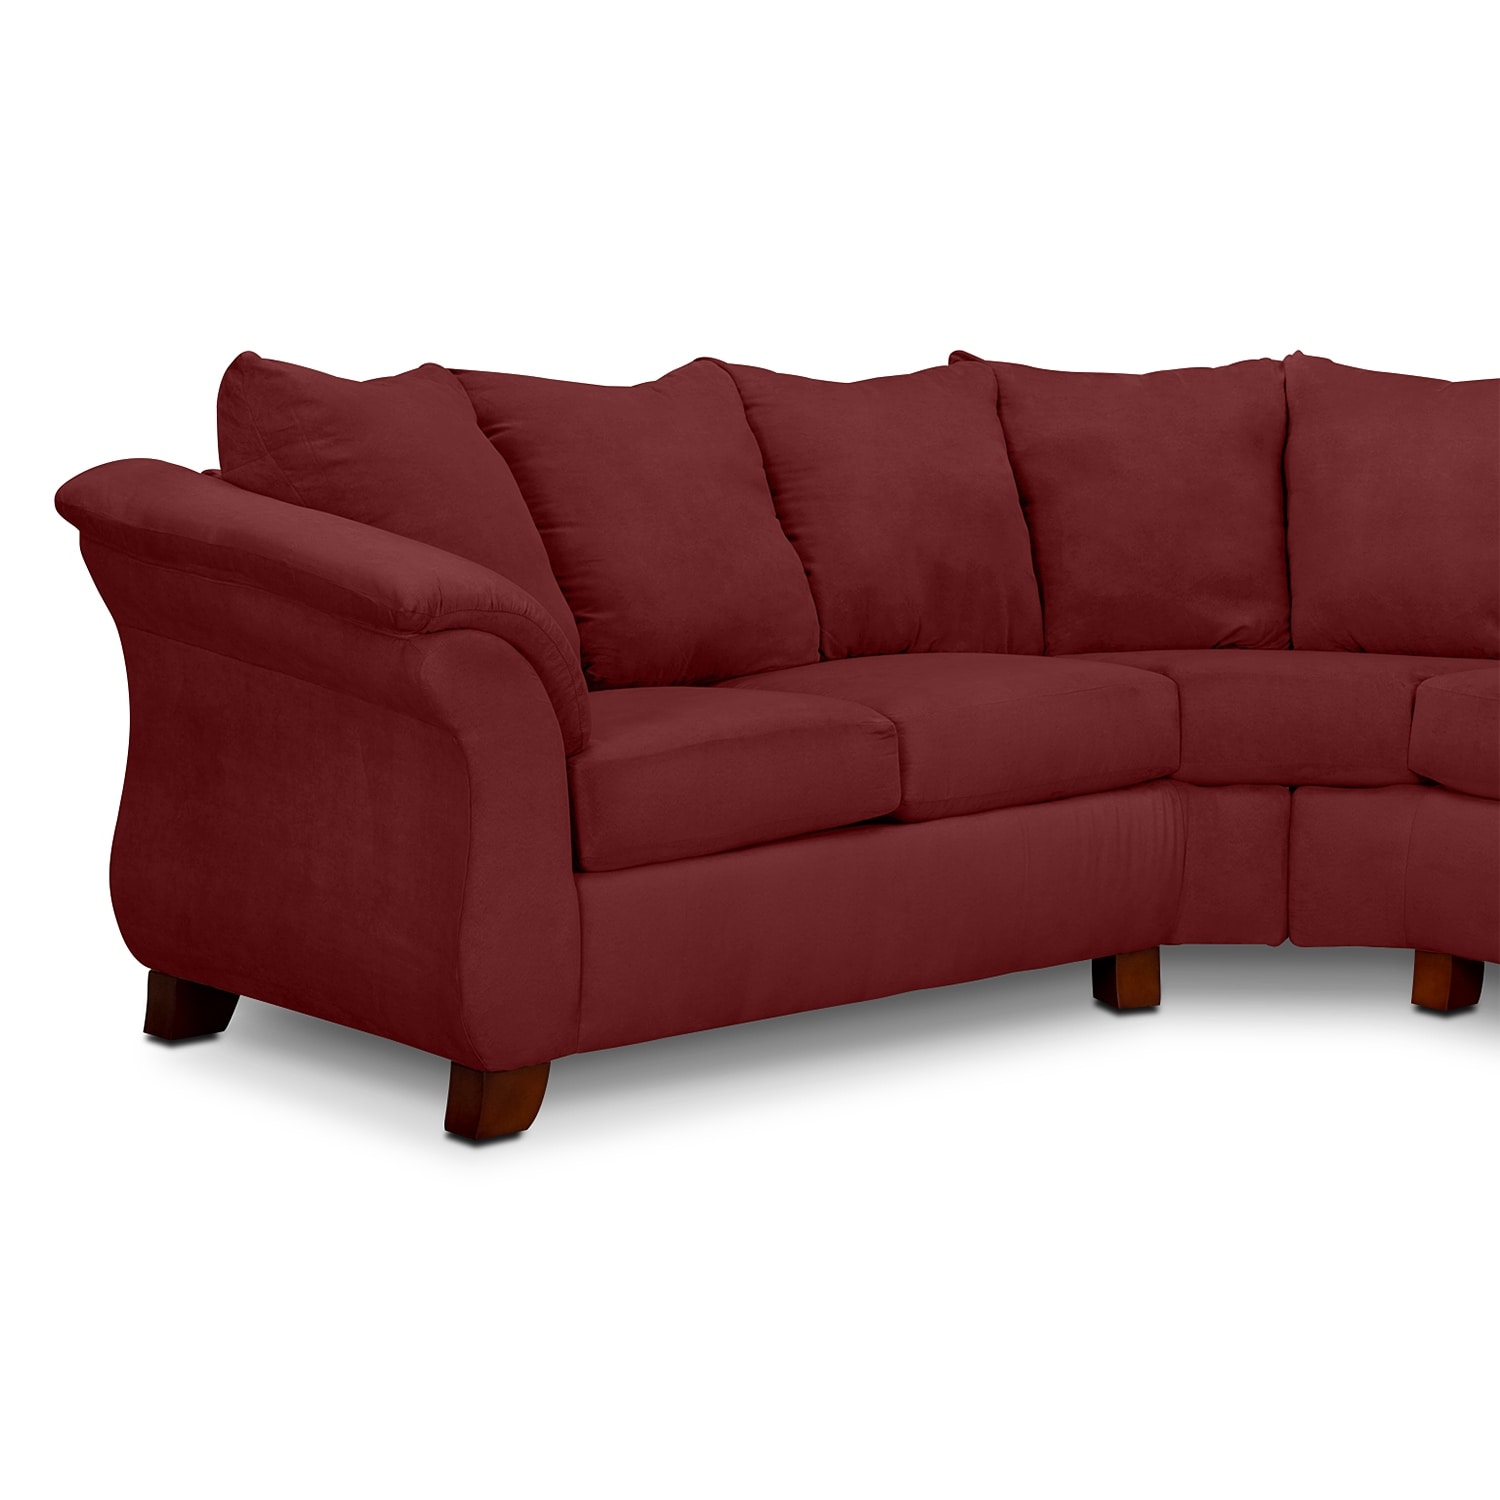 Adrian red 2 piece sectional red american signature for 2 piece red sectional sofa